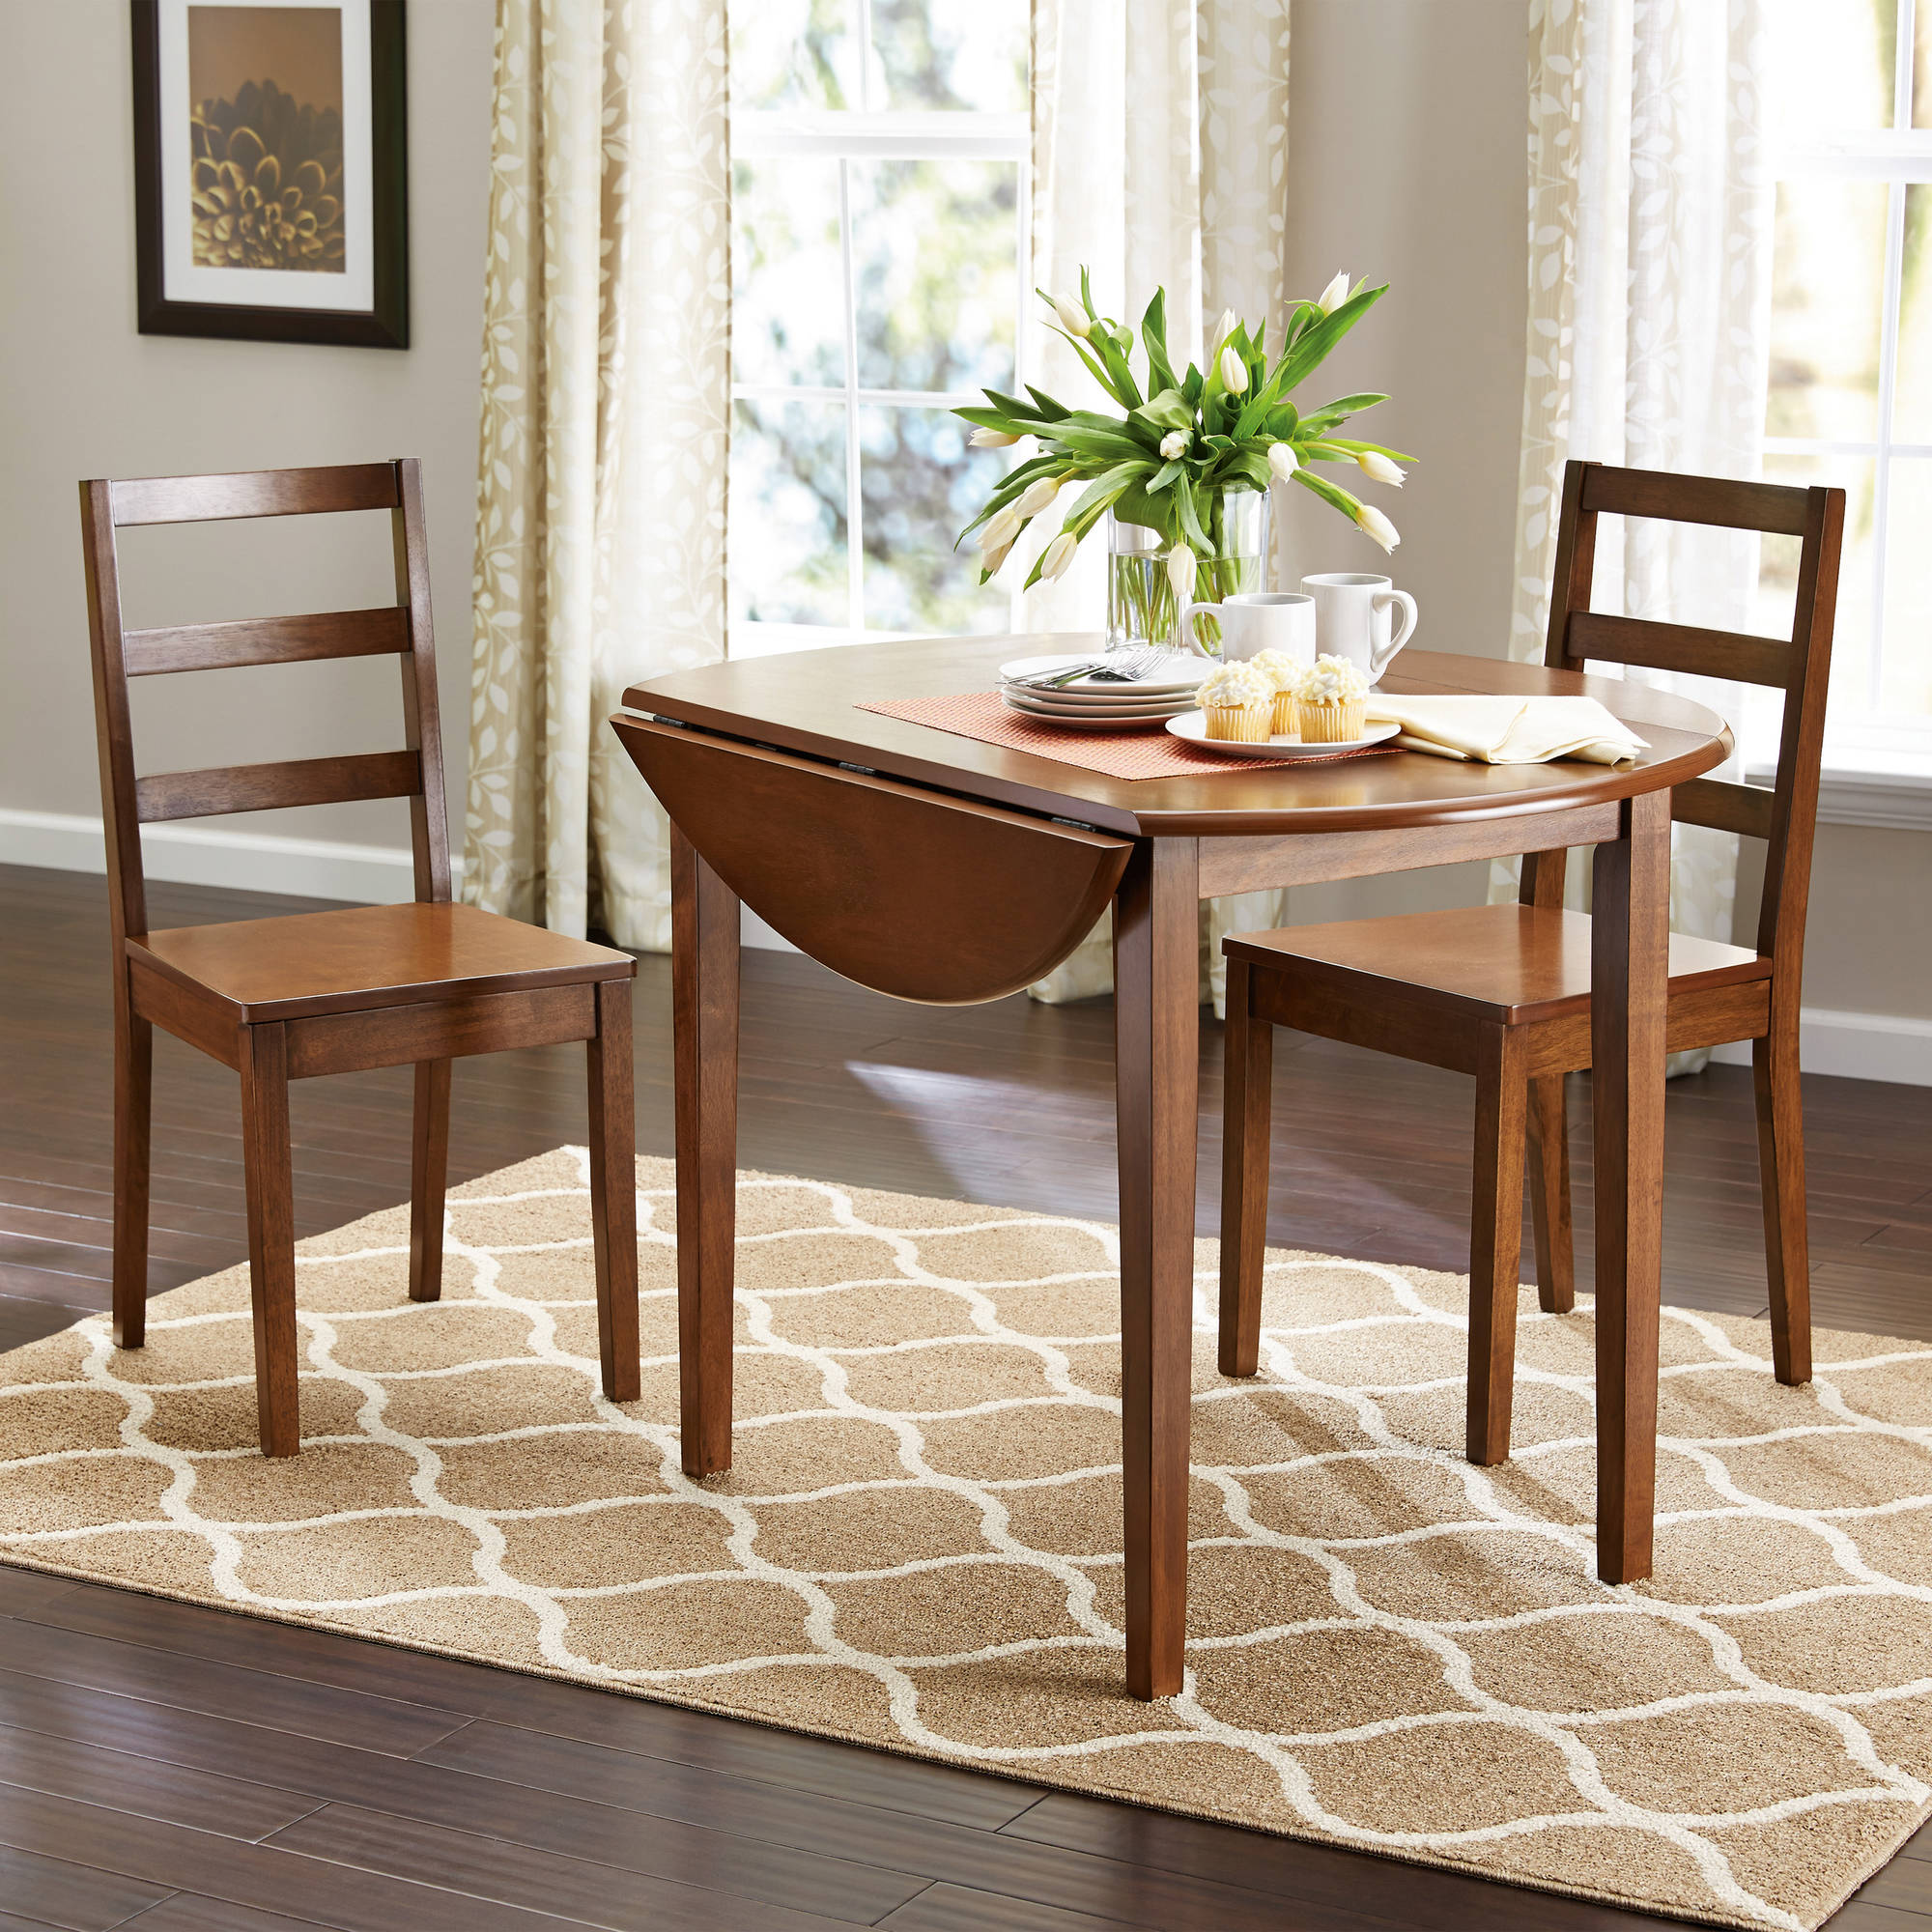 mainstays 3-piece drop leaf dining set, medium oak finish